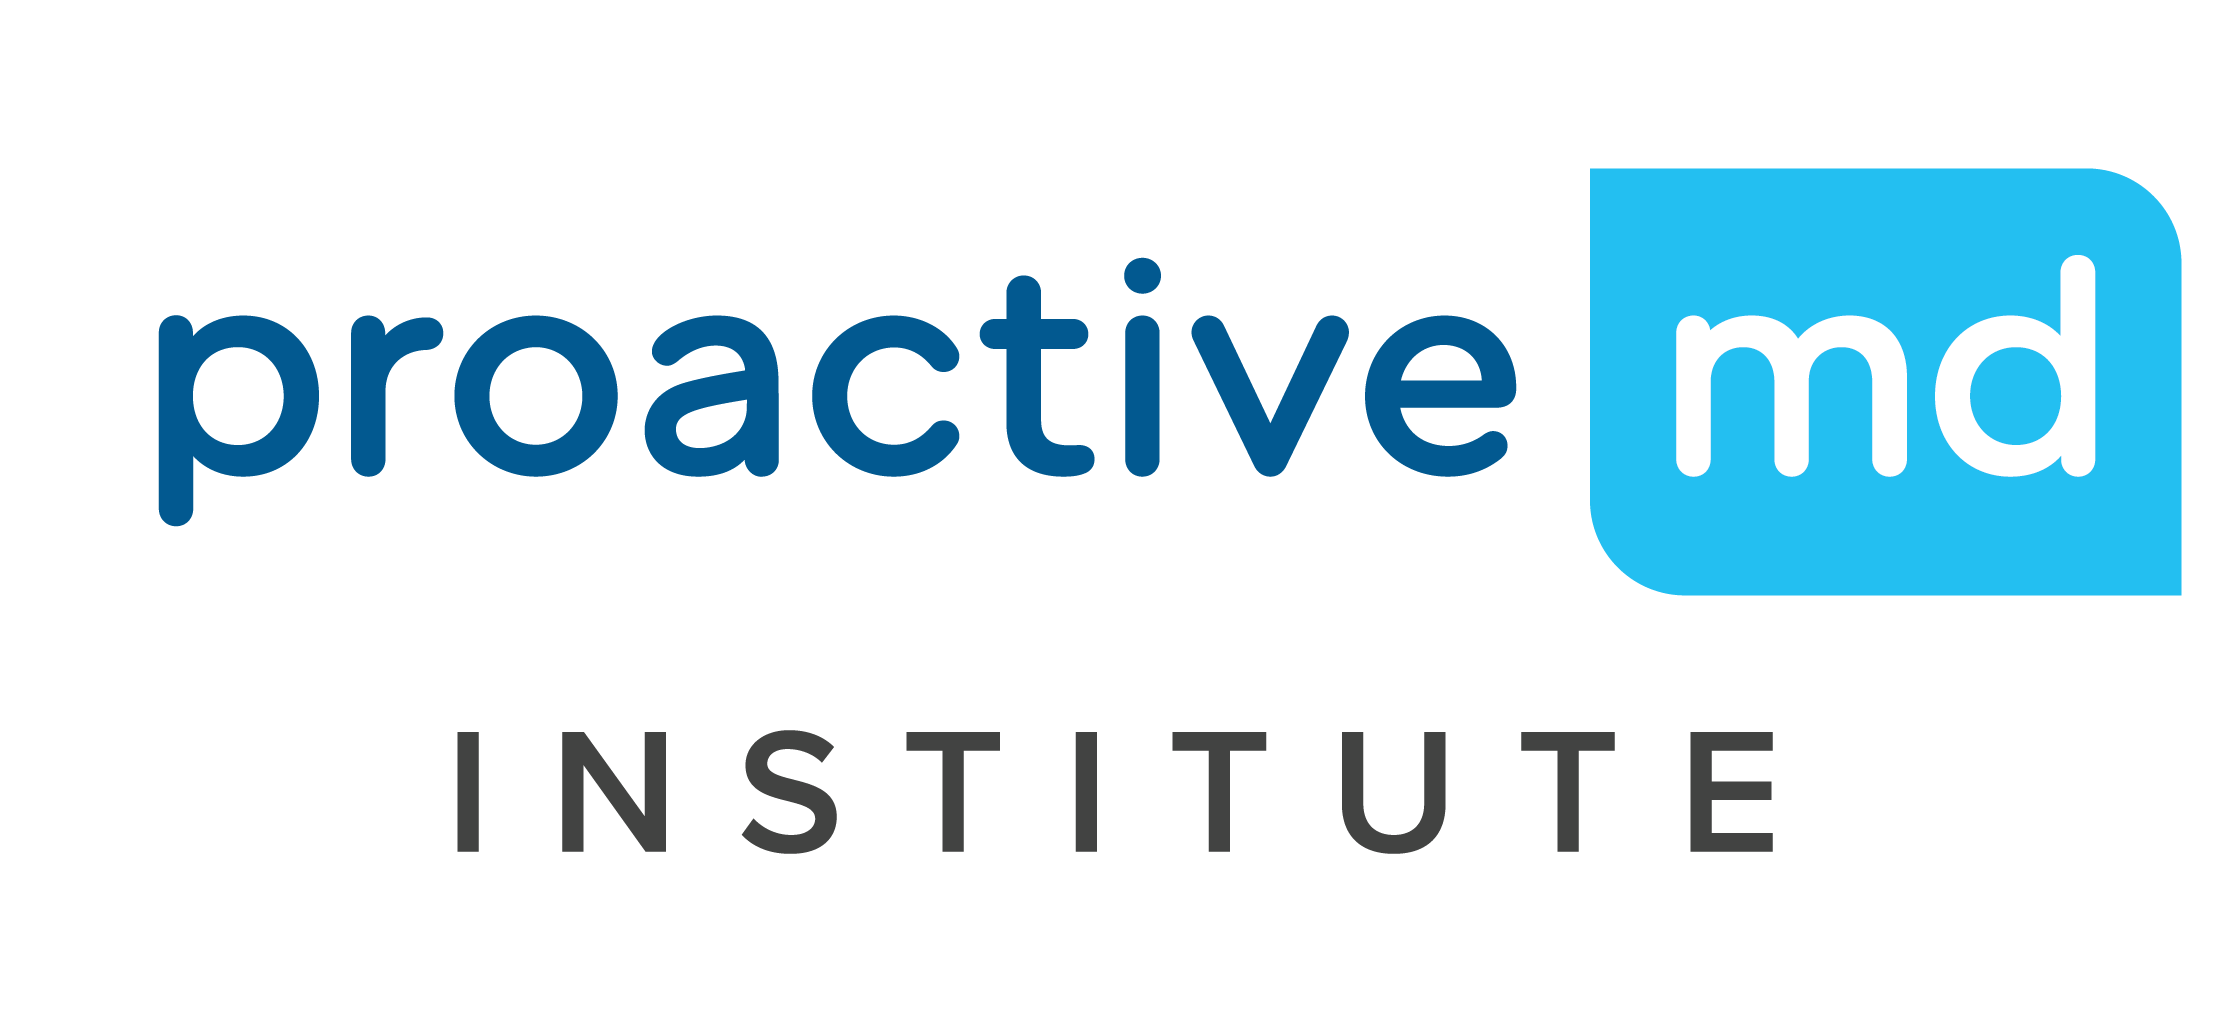 Proactive MD Institute